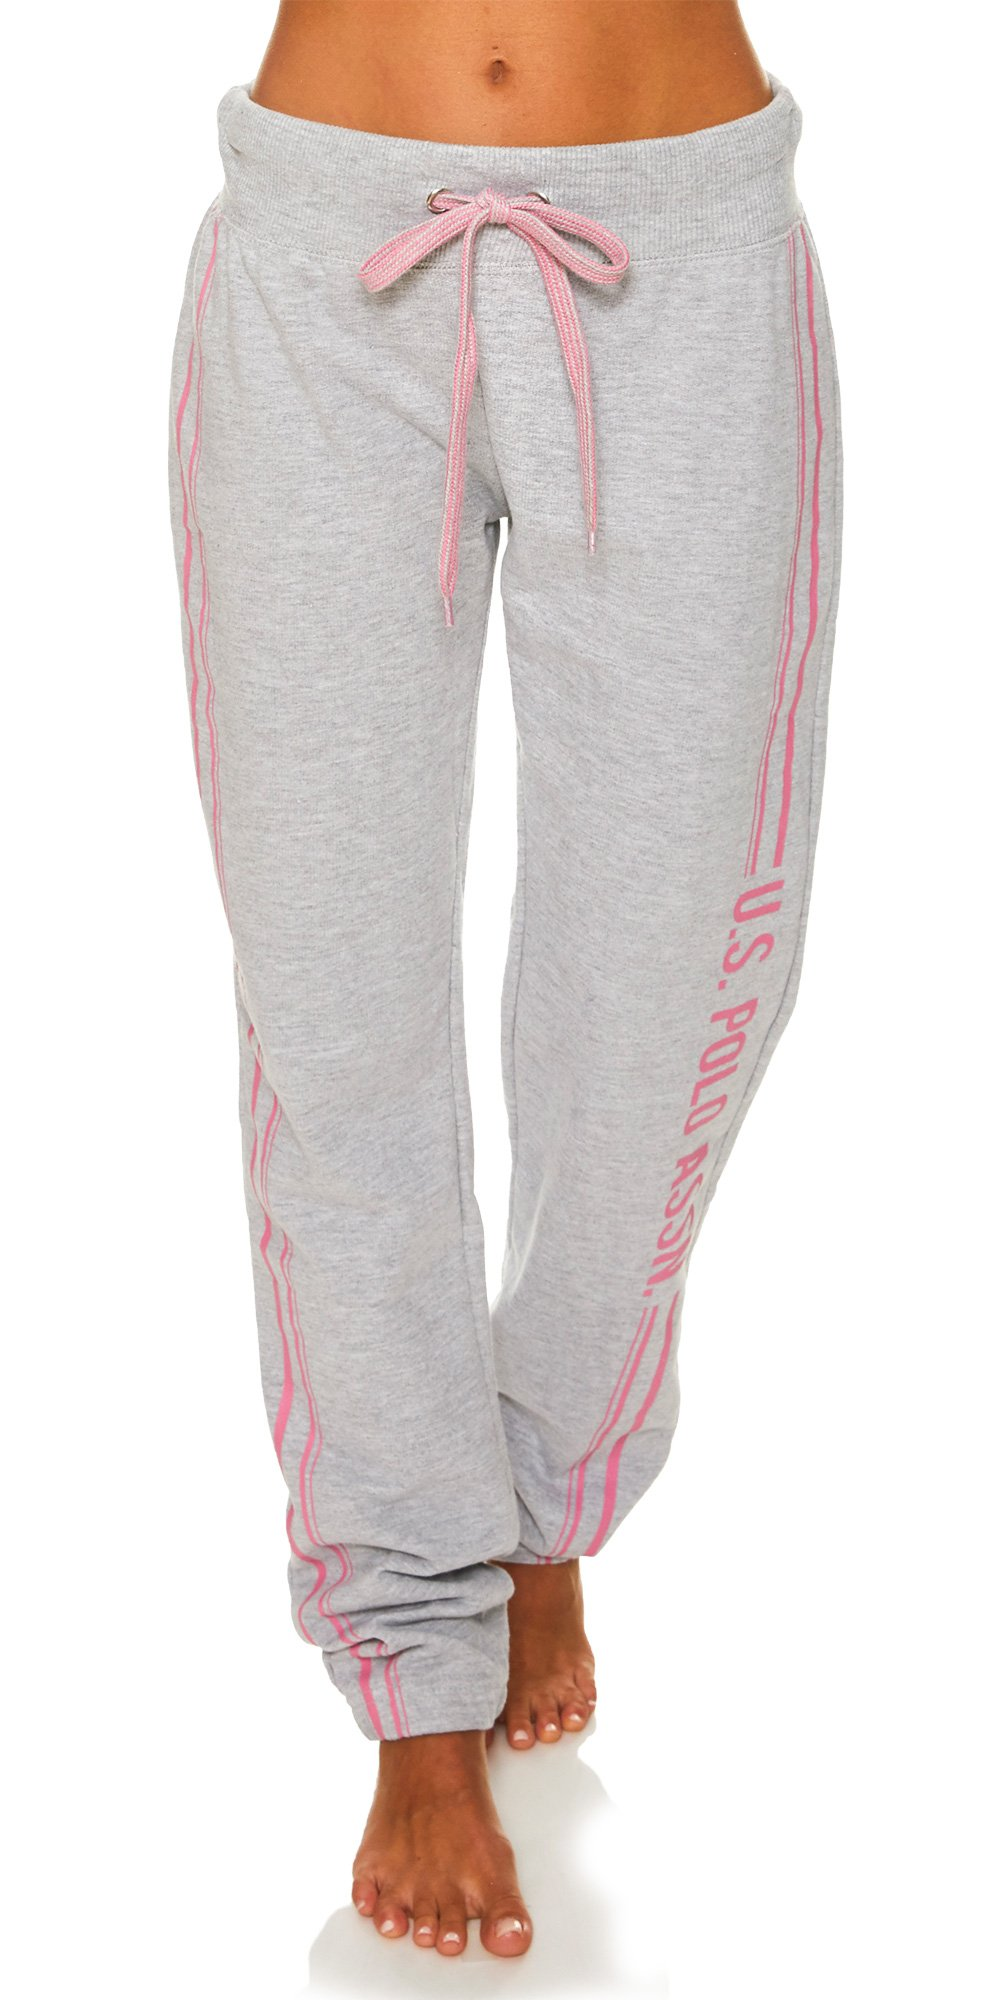 U.S. Polo Assn. Womens Printed Lounge Pajama Sleep Sweatpants Heather Grey Medium